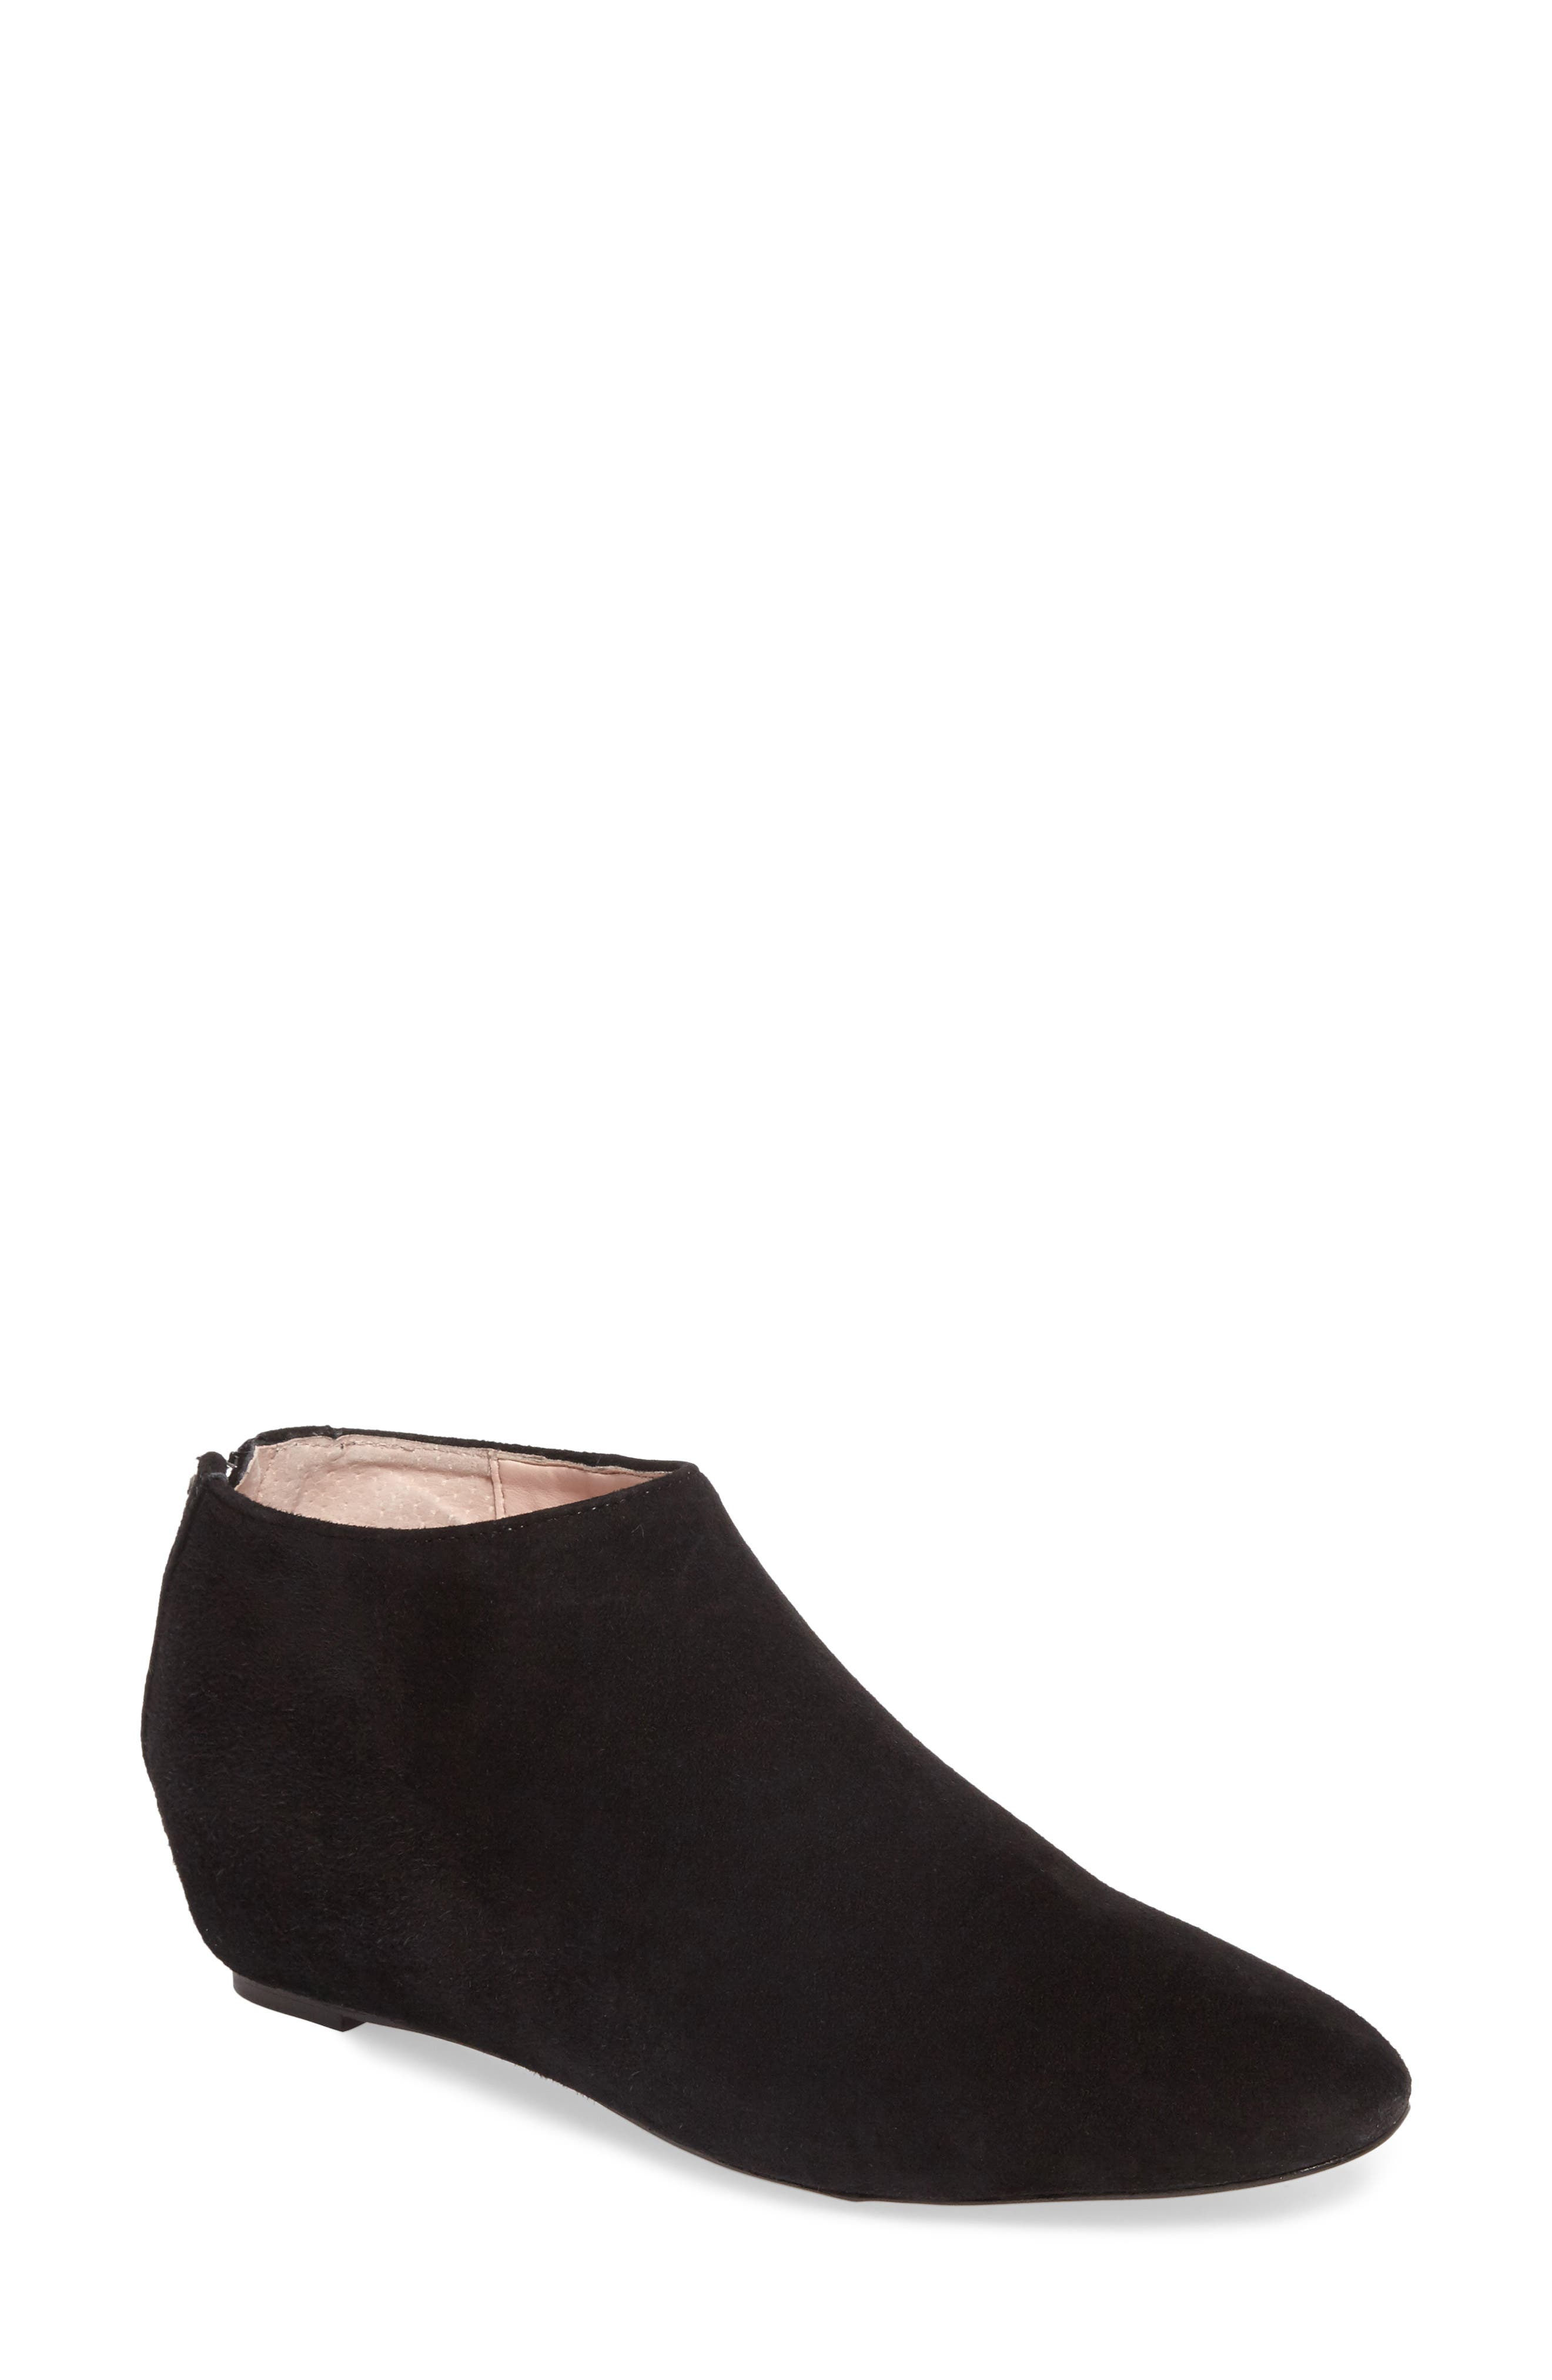 Aves Les Filles Beatrice Ankle Boot,                             Main thumbnail 1, color,                             Black Suede